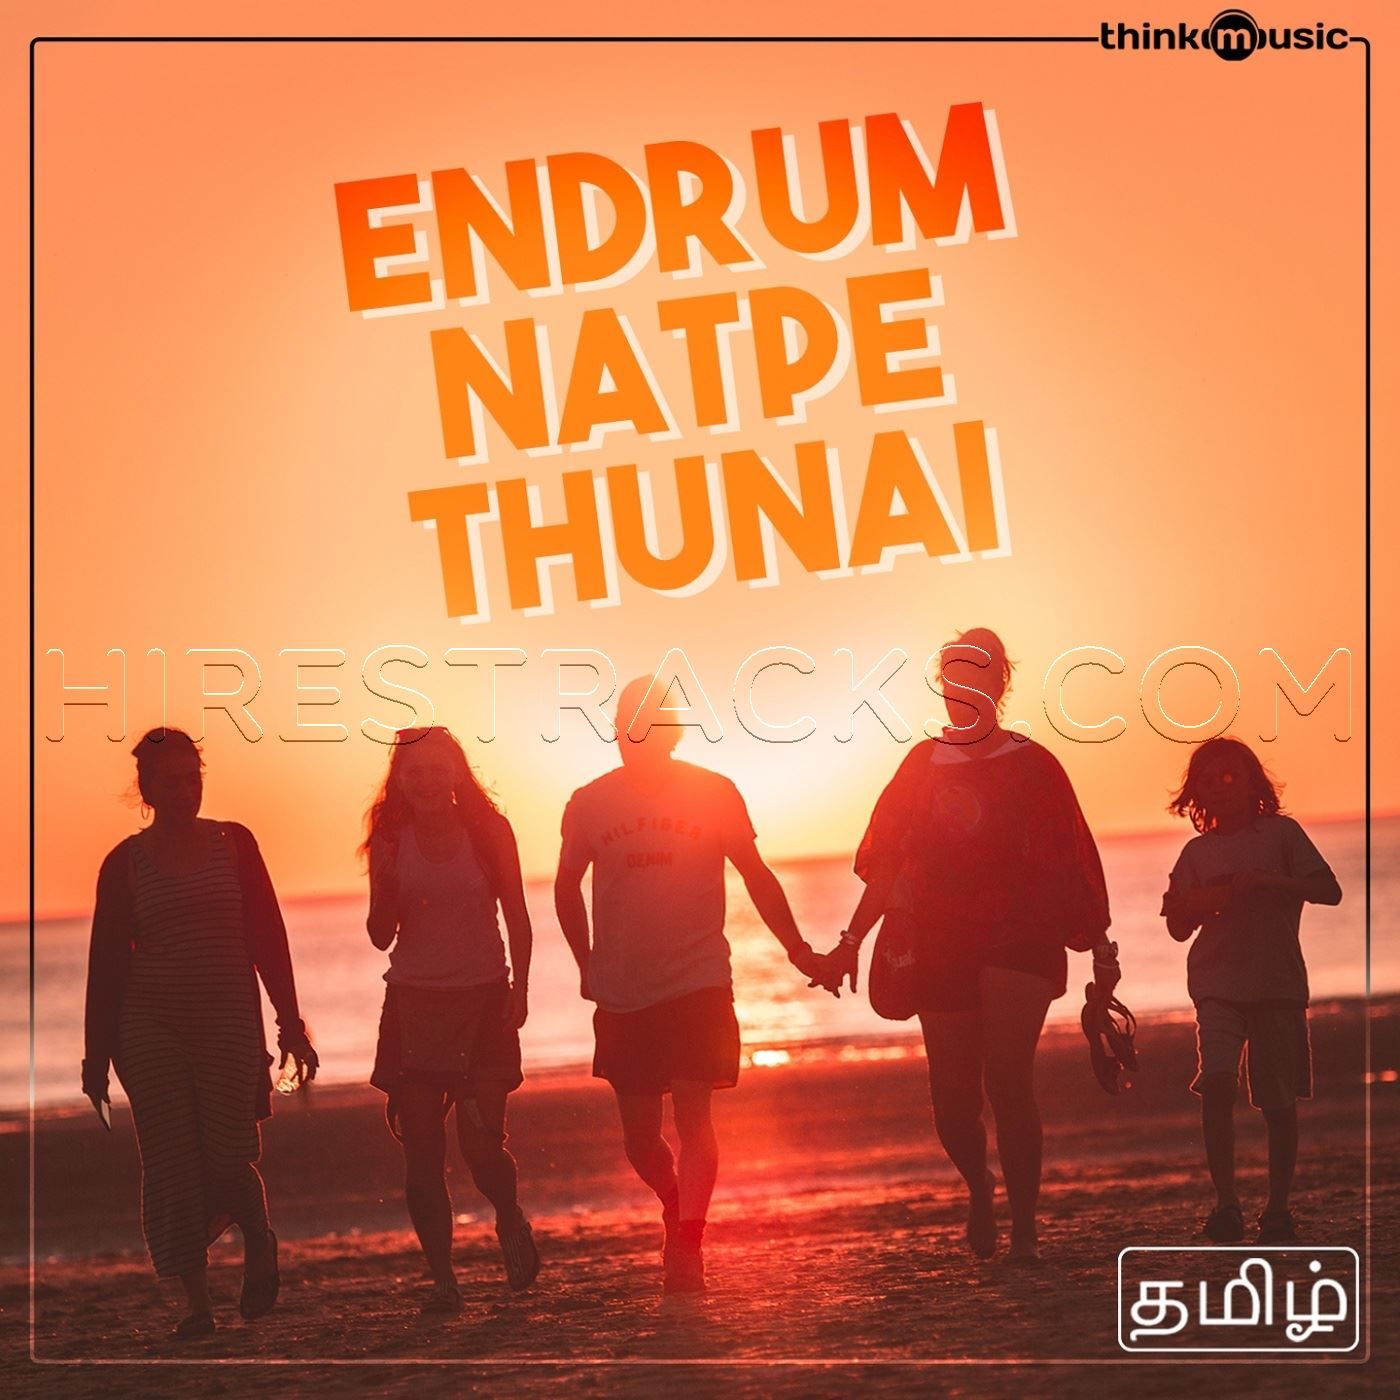 Endrum Natpe Thunai (2019) (Various Artists) (Think Music)